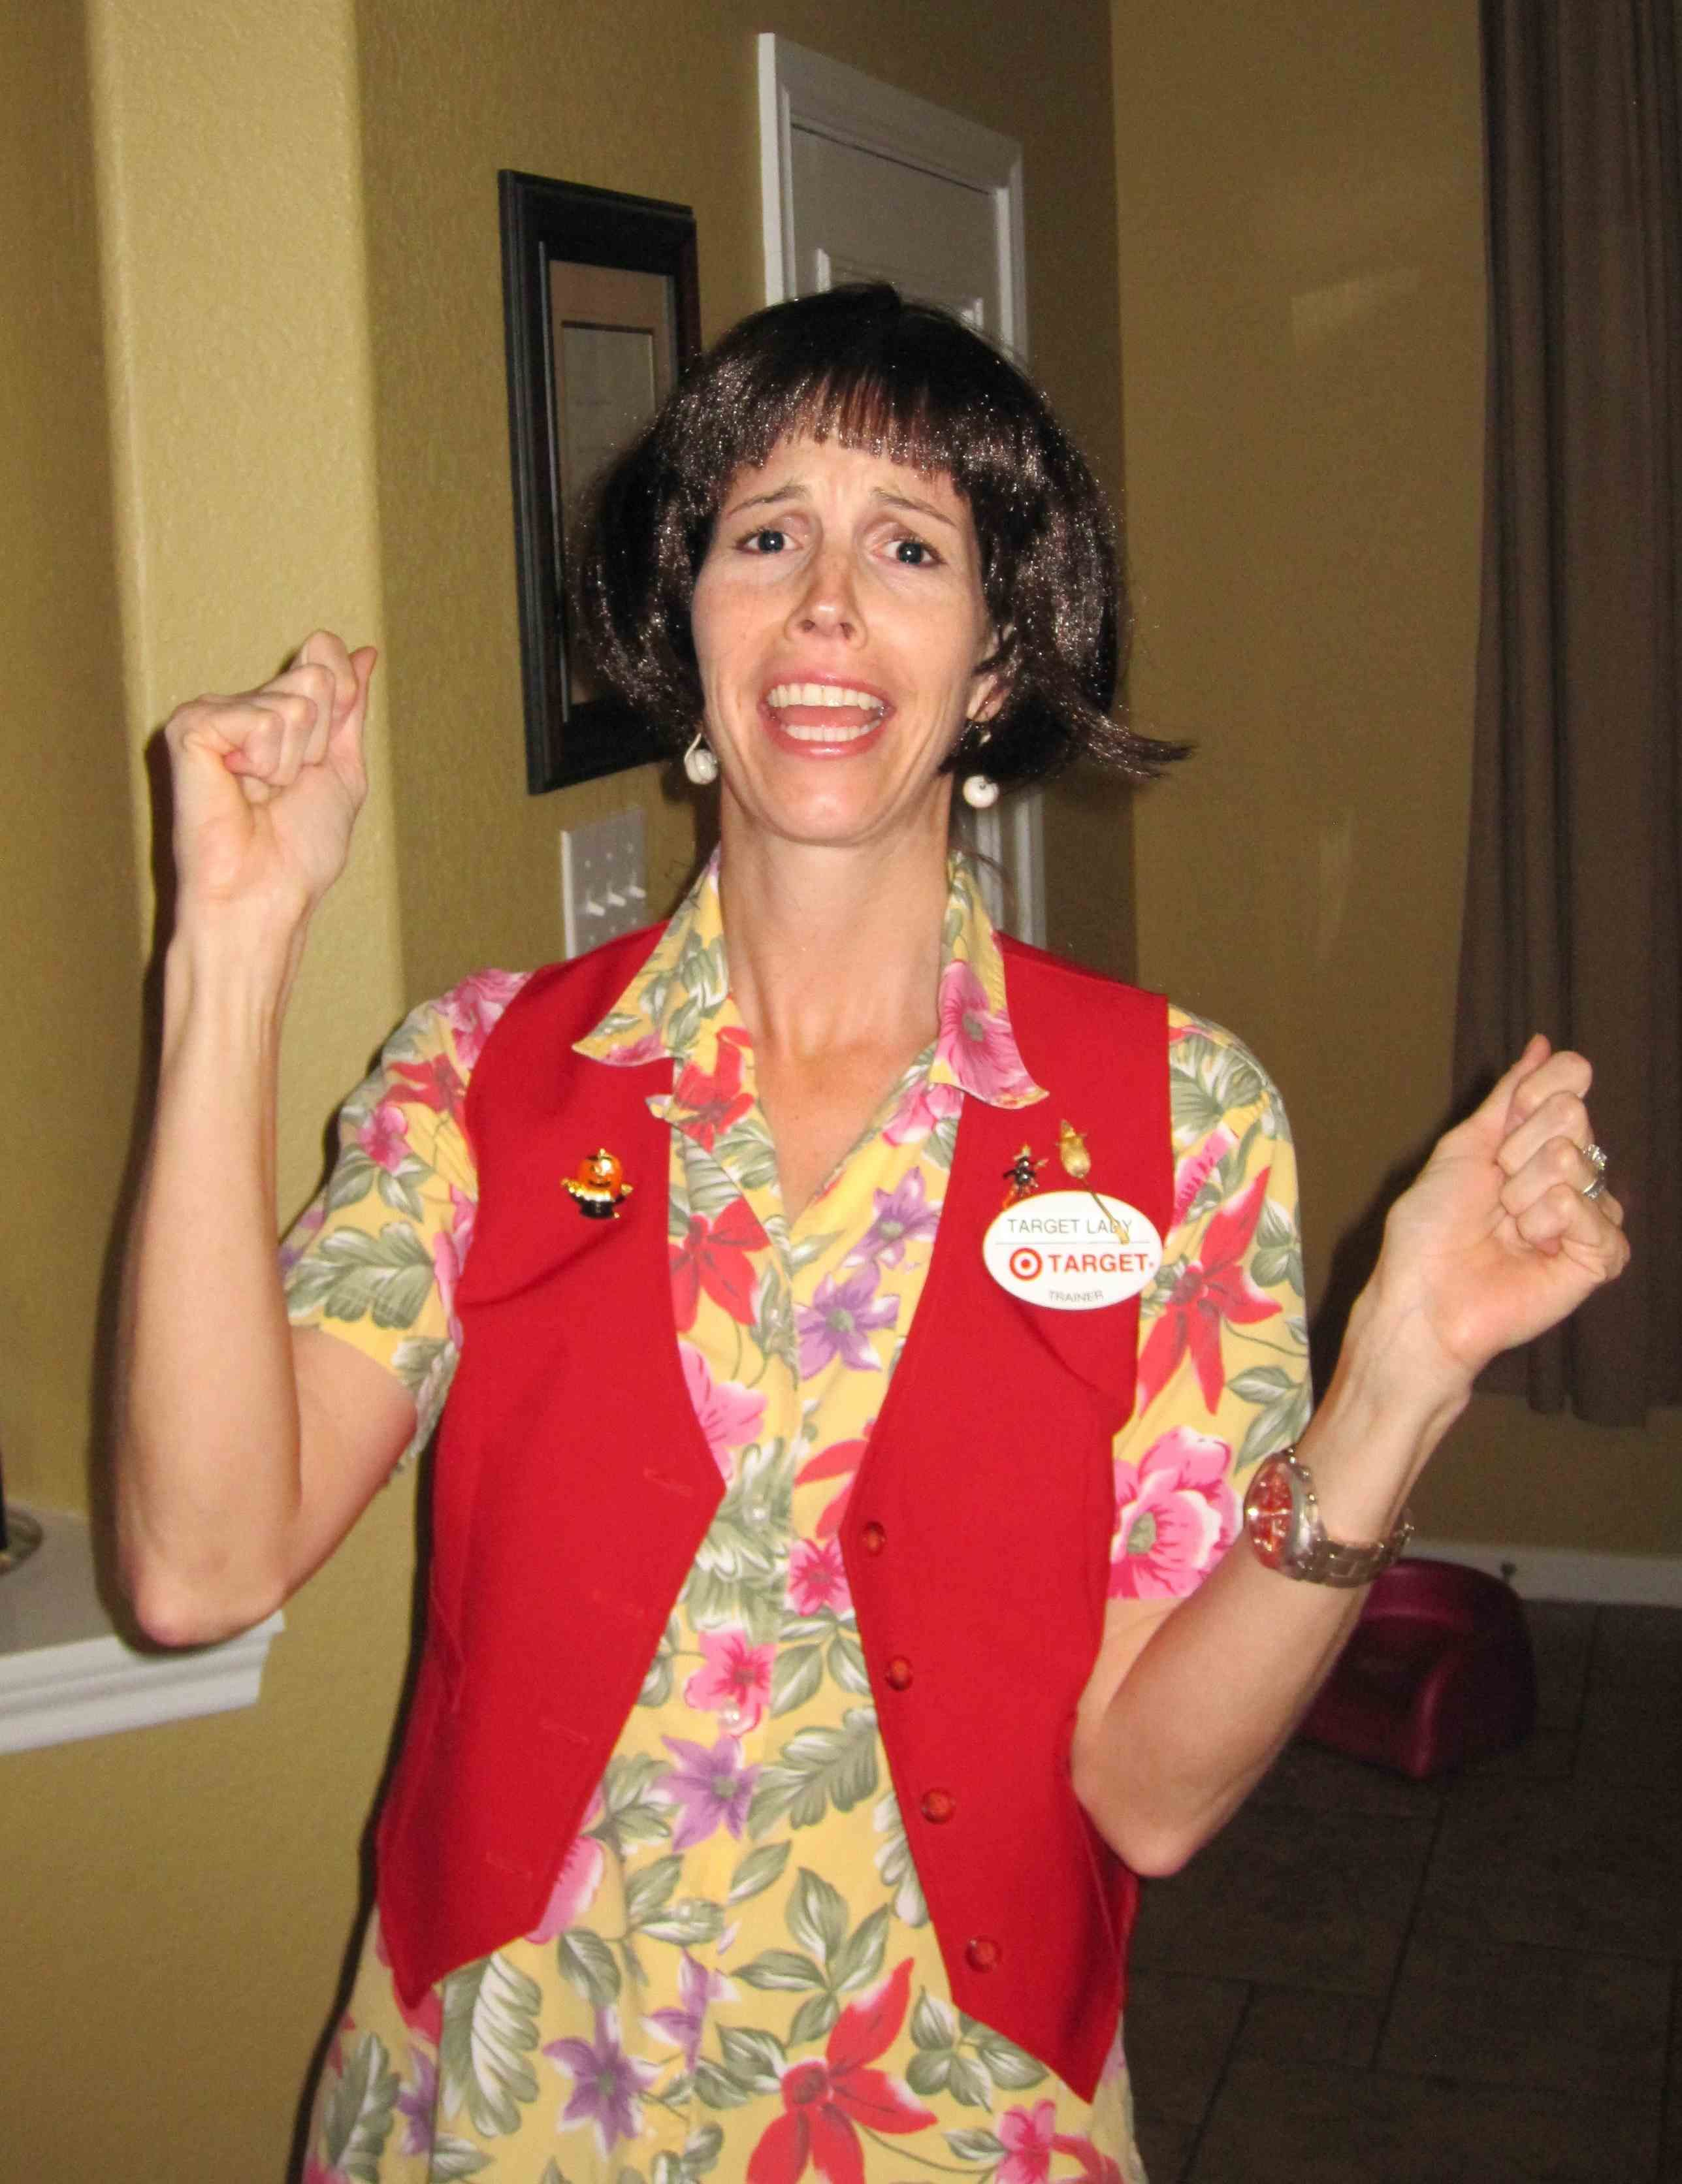 target lady snl - Google Search  sc 1 st  Pinterest & target lady snl - Google Search   Halloween costume ideas for the ...